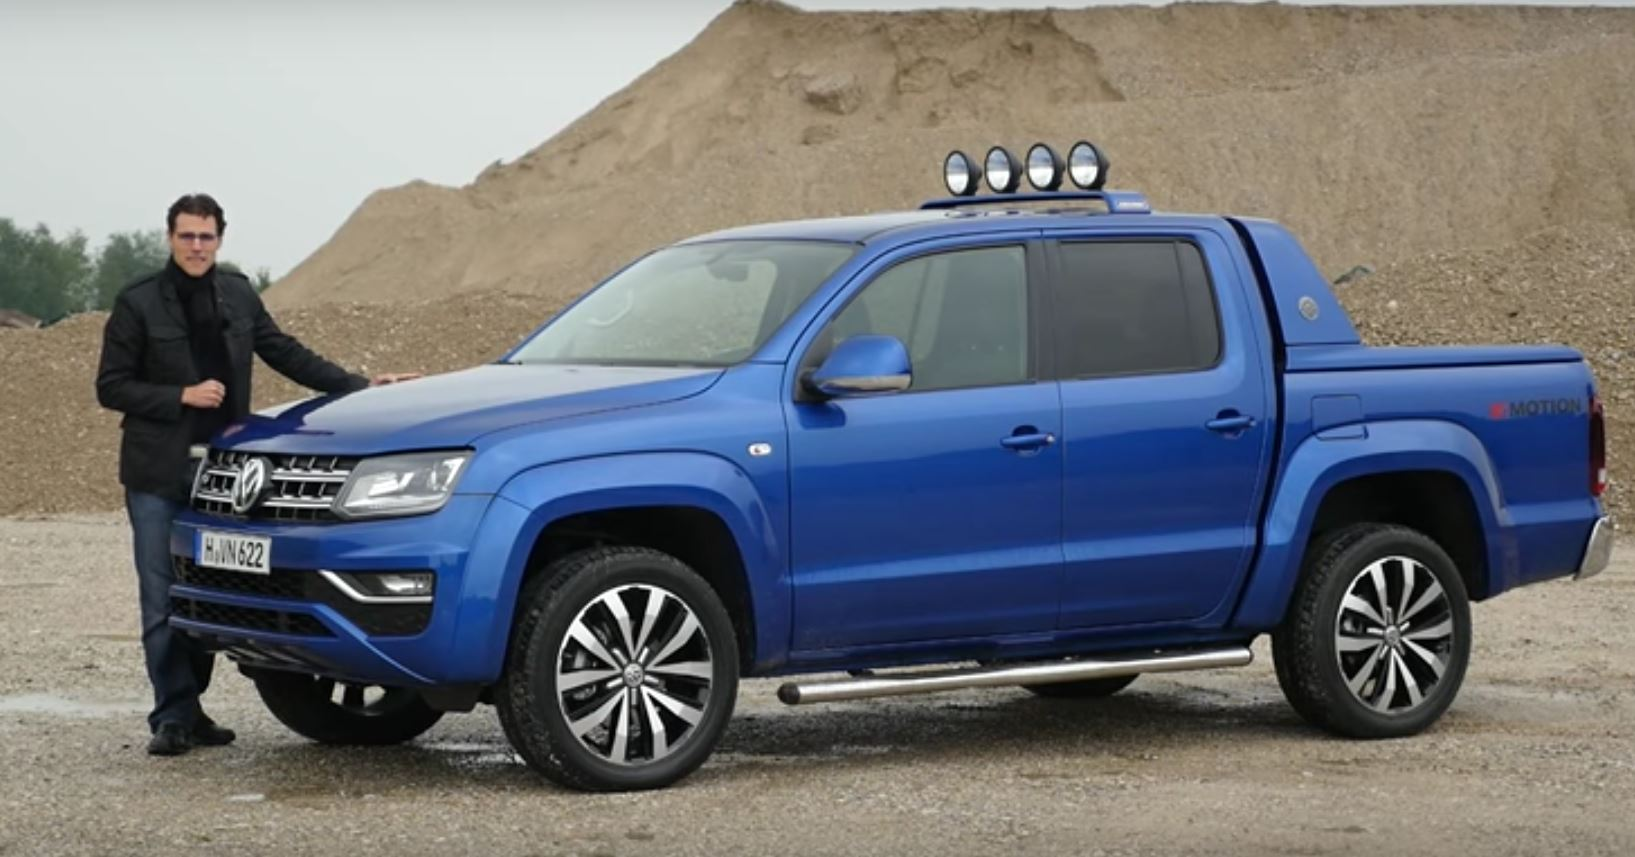 2017 Volkswagen Amarok 3.0 TDI 224 HP Acceleration Test and Review - autoevolution